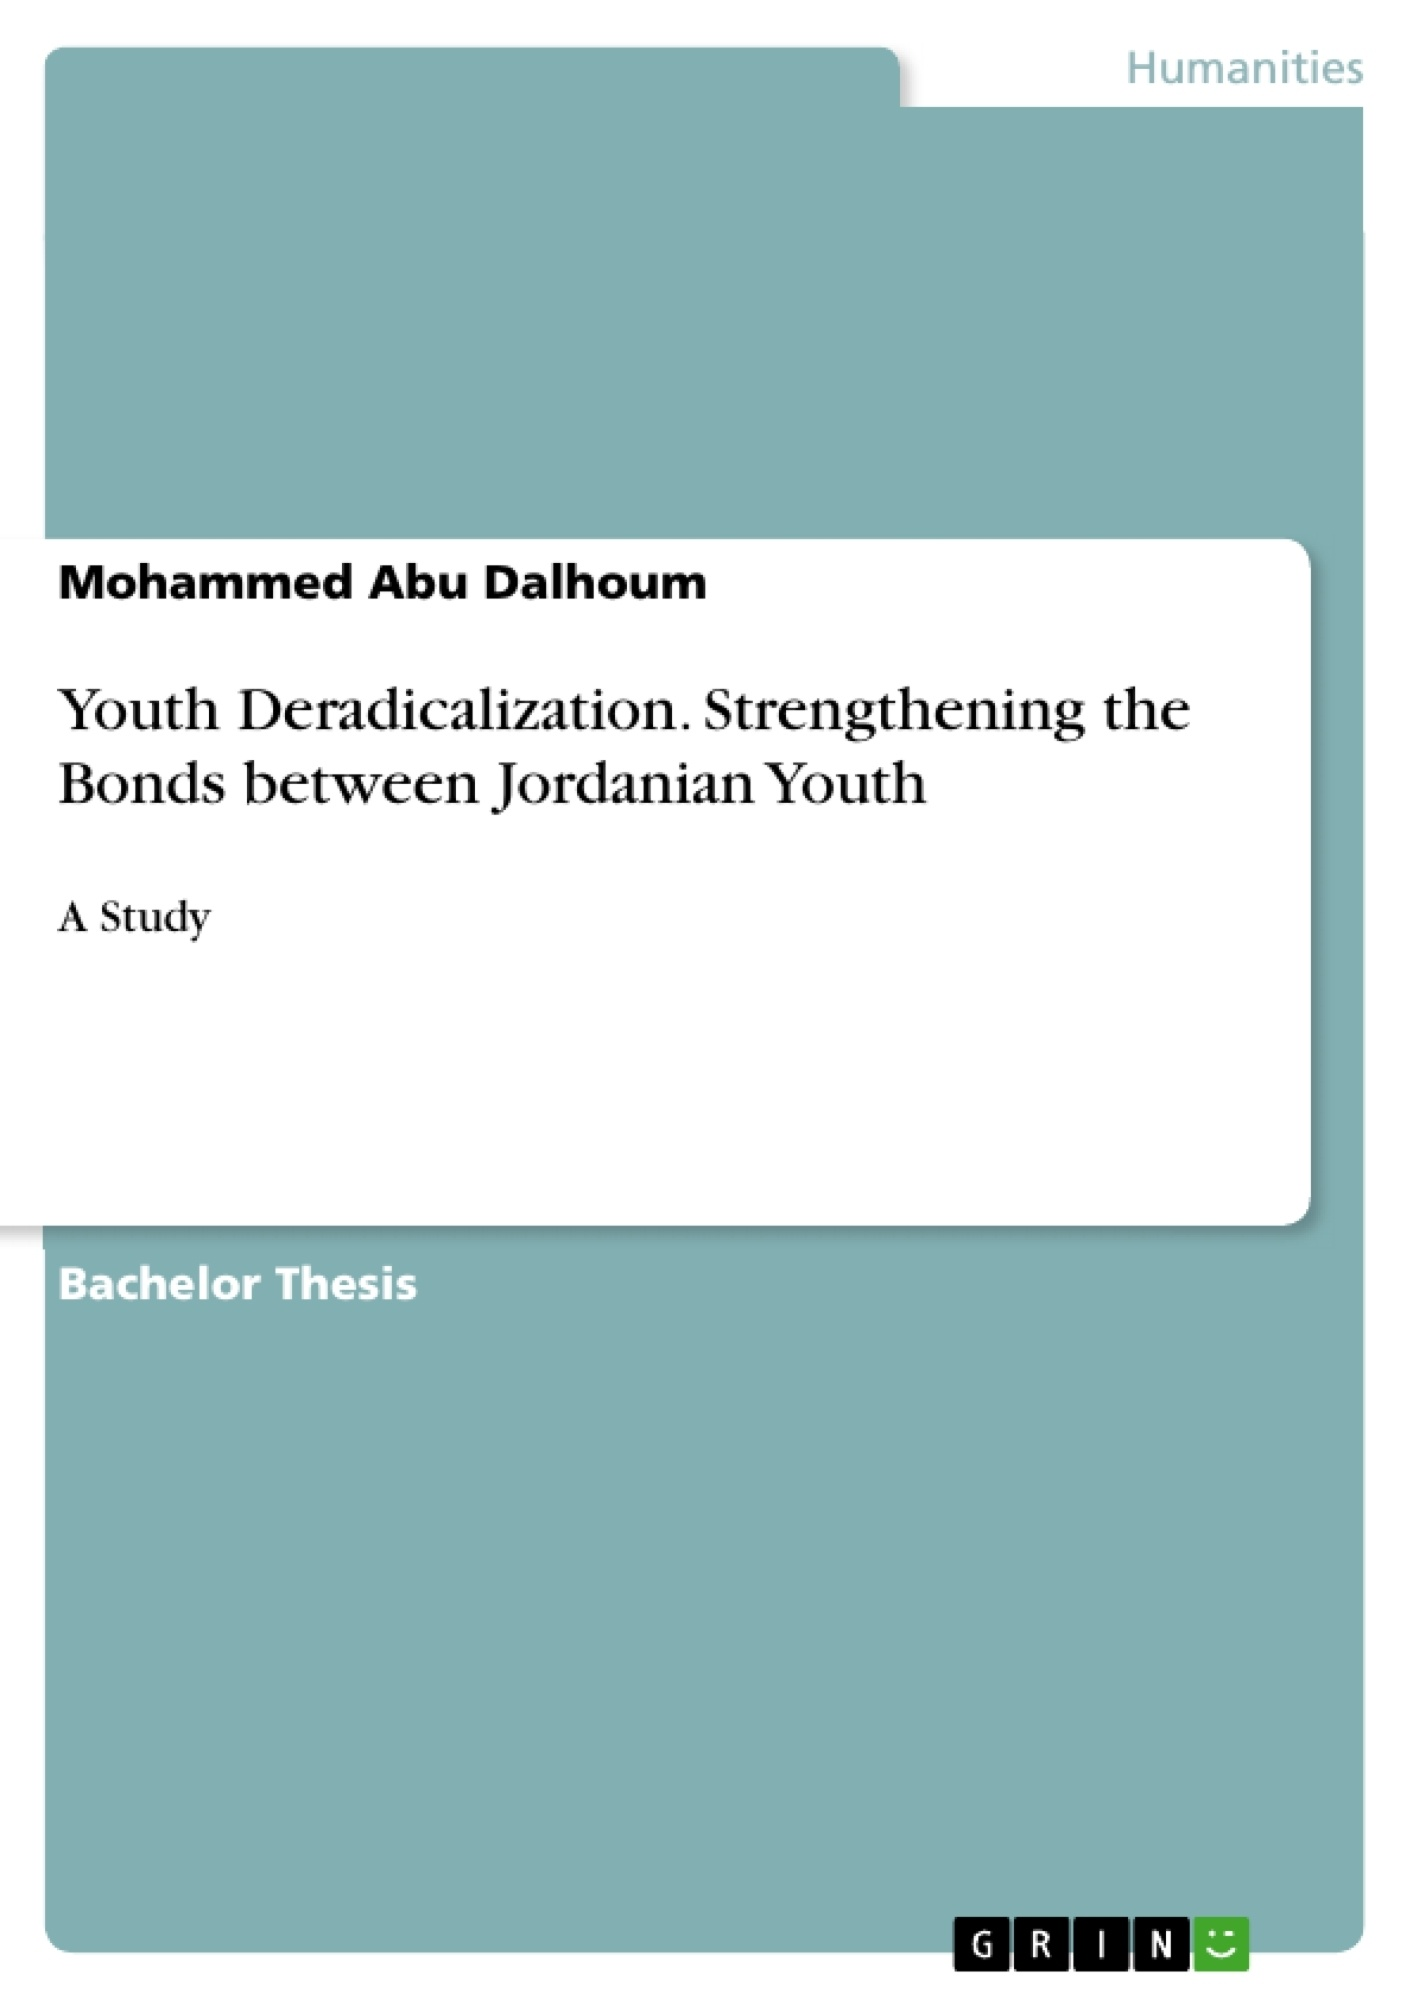 Title: Youth Deradicalization. Strengthening the Bonds between Jordanian Youth